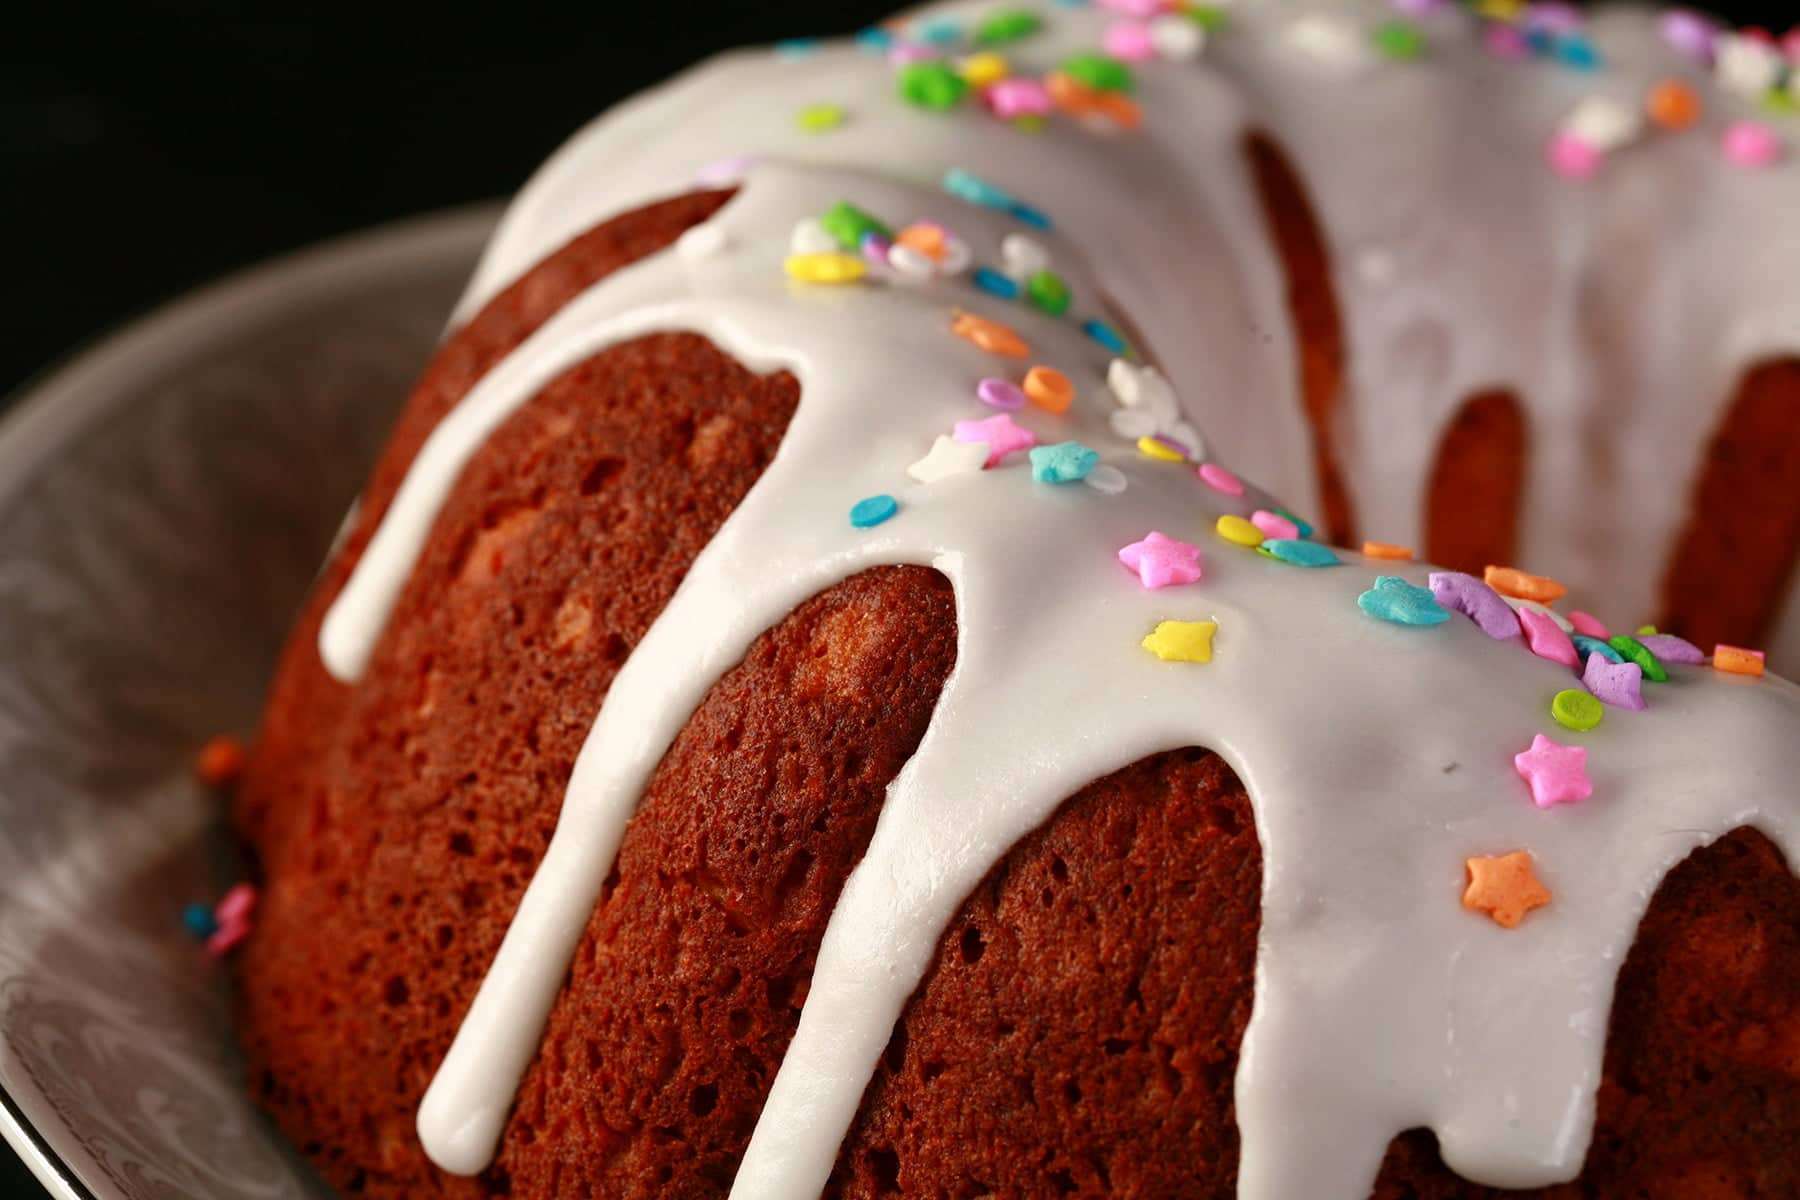 A close up view of a gluten-free paska. It's in the shape of a bundt pan, with dripping white glaze and topped with pastel coloured sprinkles.